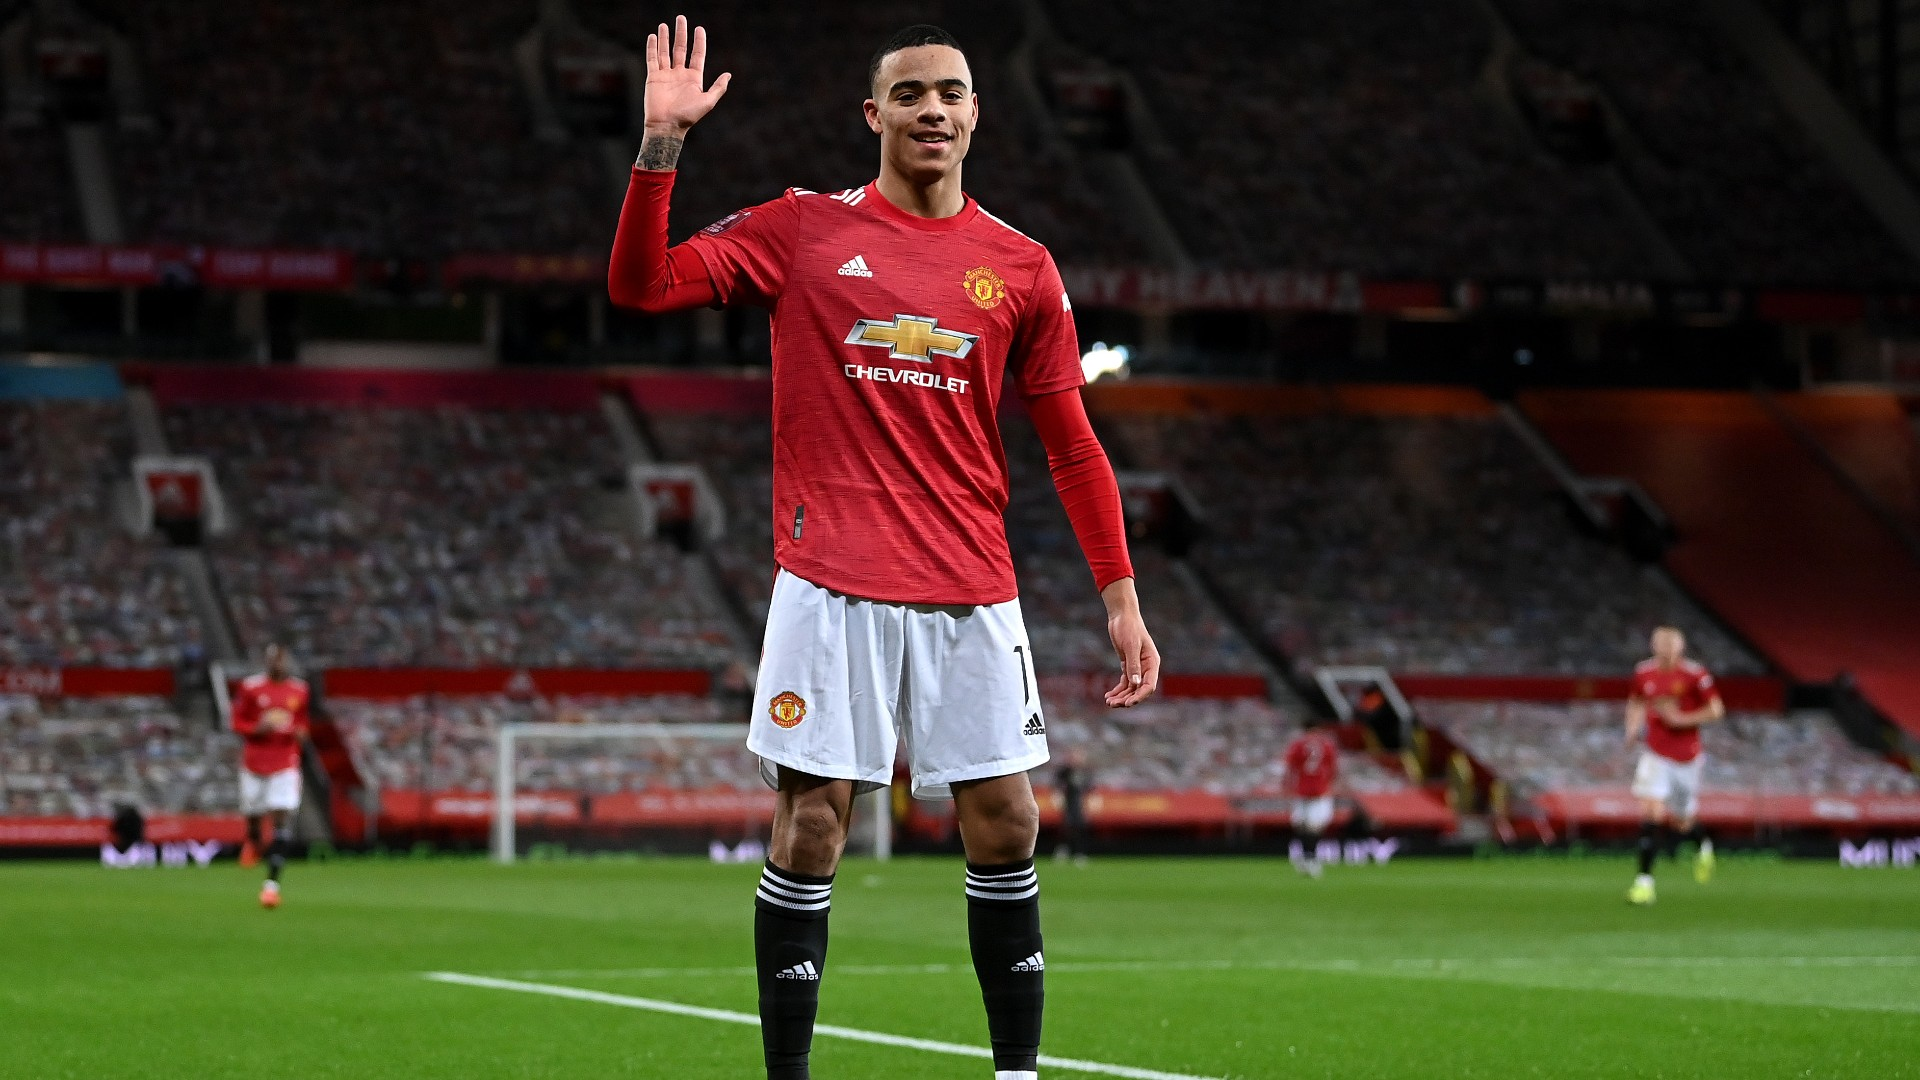 Man Utd star Greenwood reacts to Van Persie comparisons and reveals his strongest foot